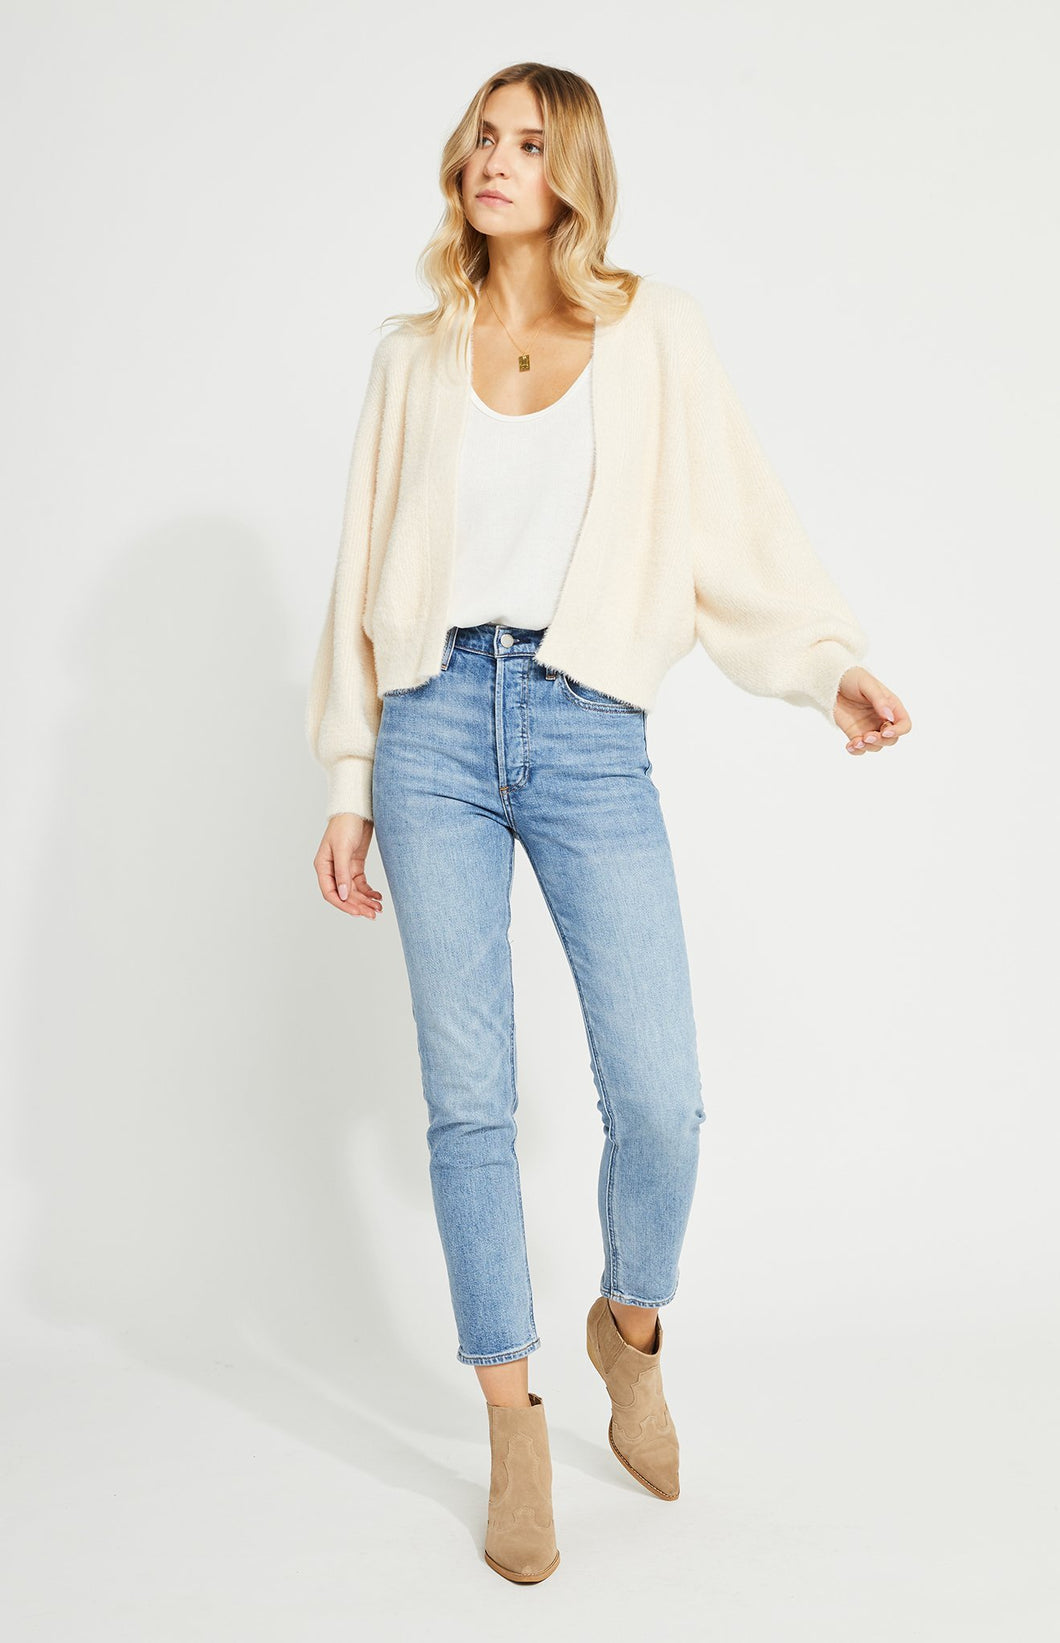 The Frieda Cardigan